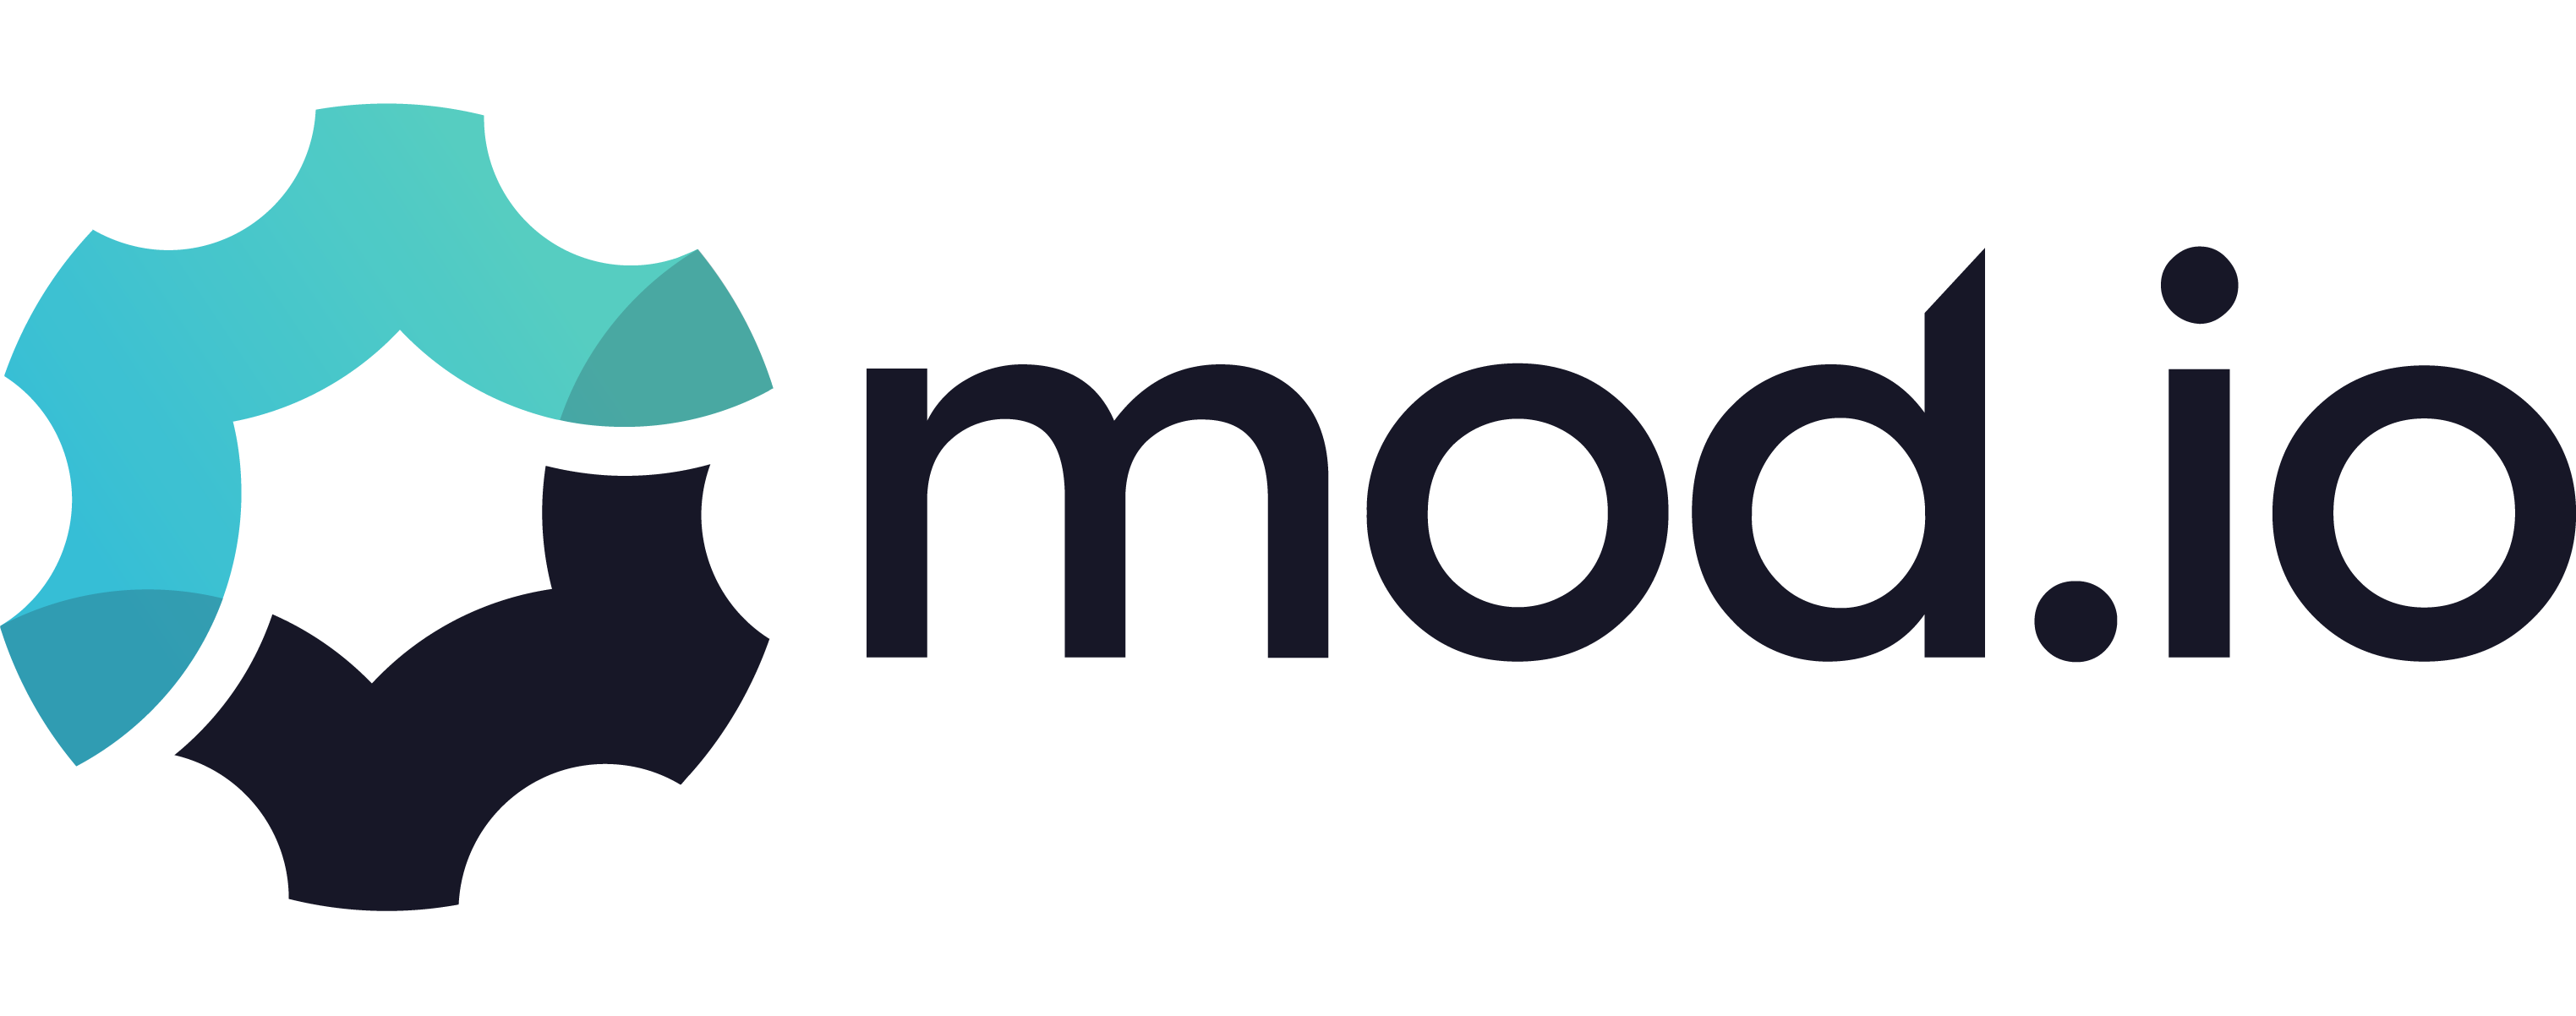 mod.io - mod API for game developers